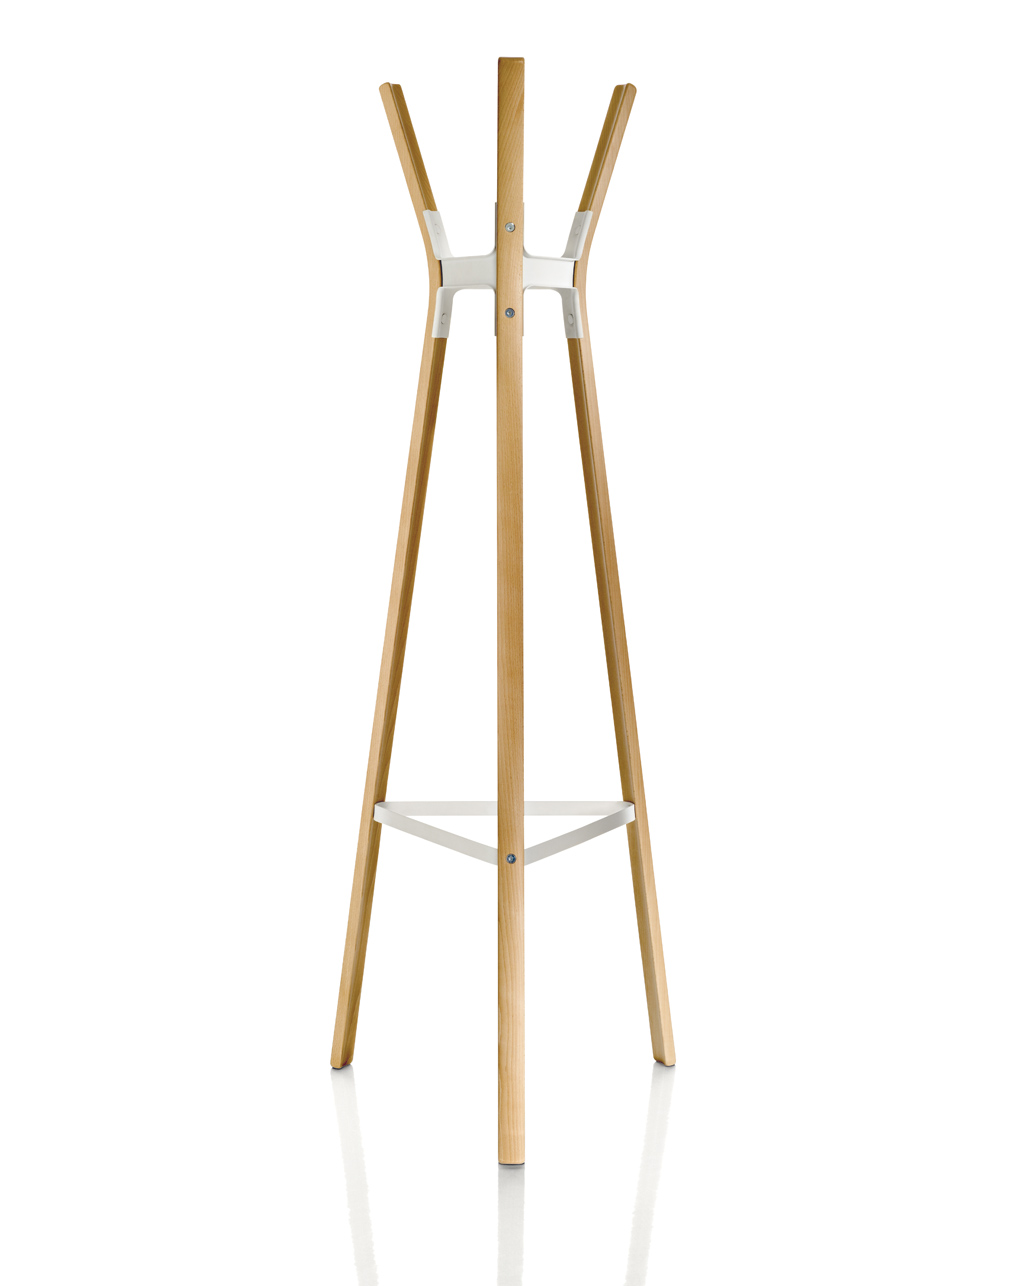 Le Meilleur Erwan Bouroullec And Ronan Bouroullec Steelwood Coat Stand Ce Mois Ci